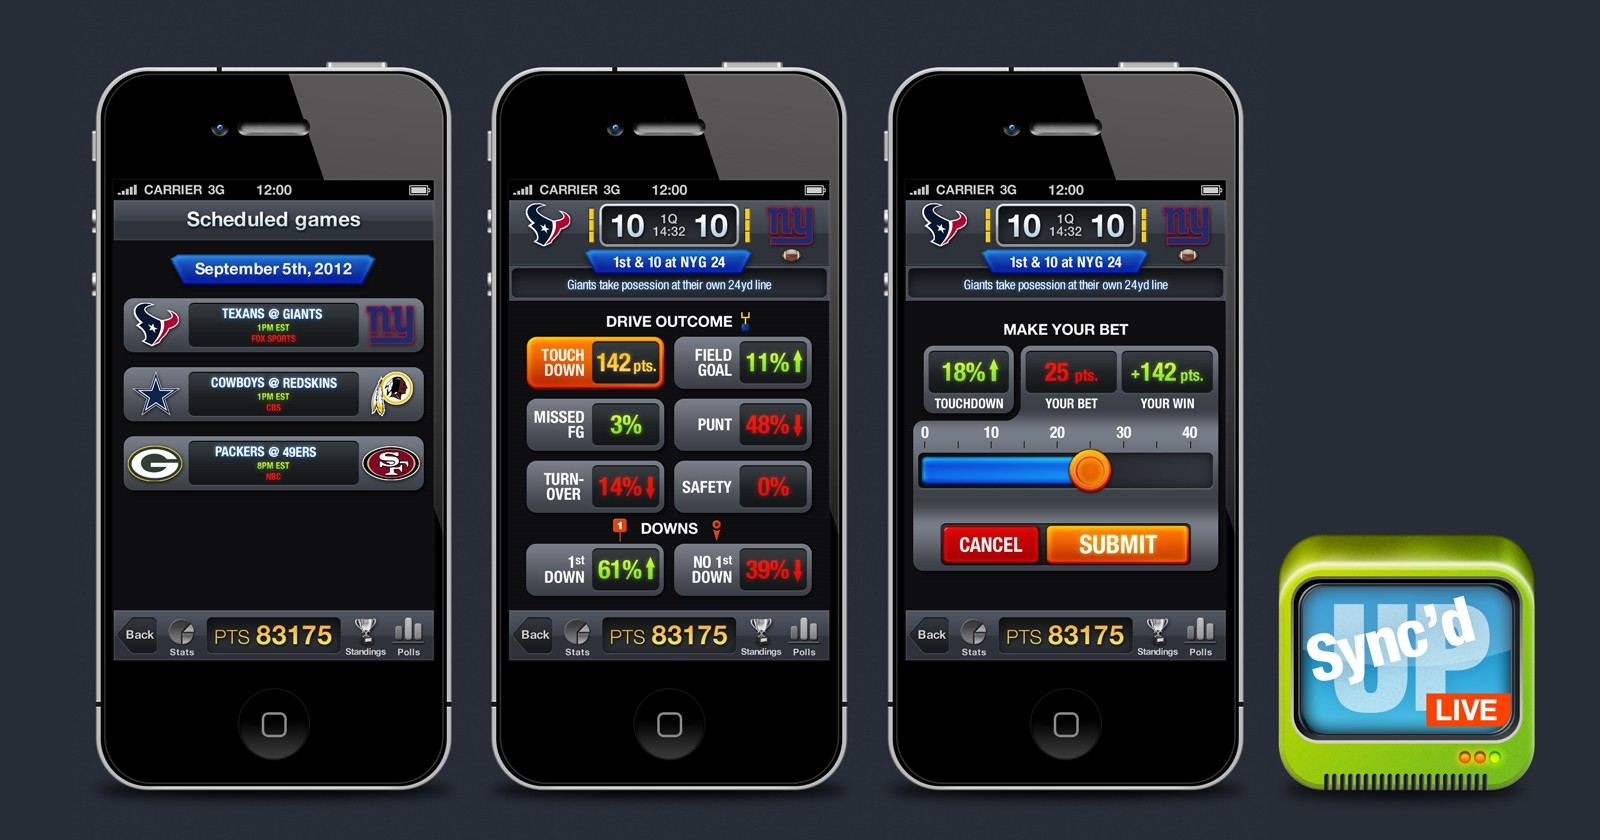 Syncd-Up Football needs a new mobile app design